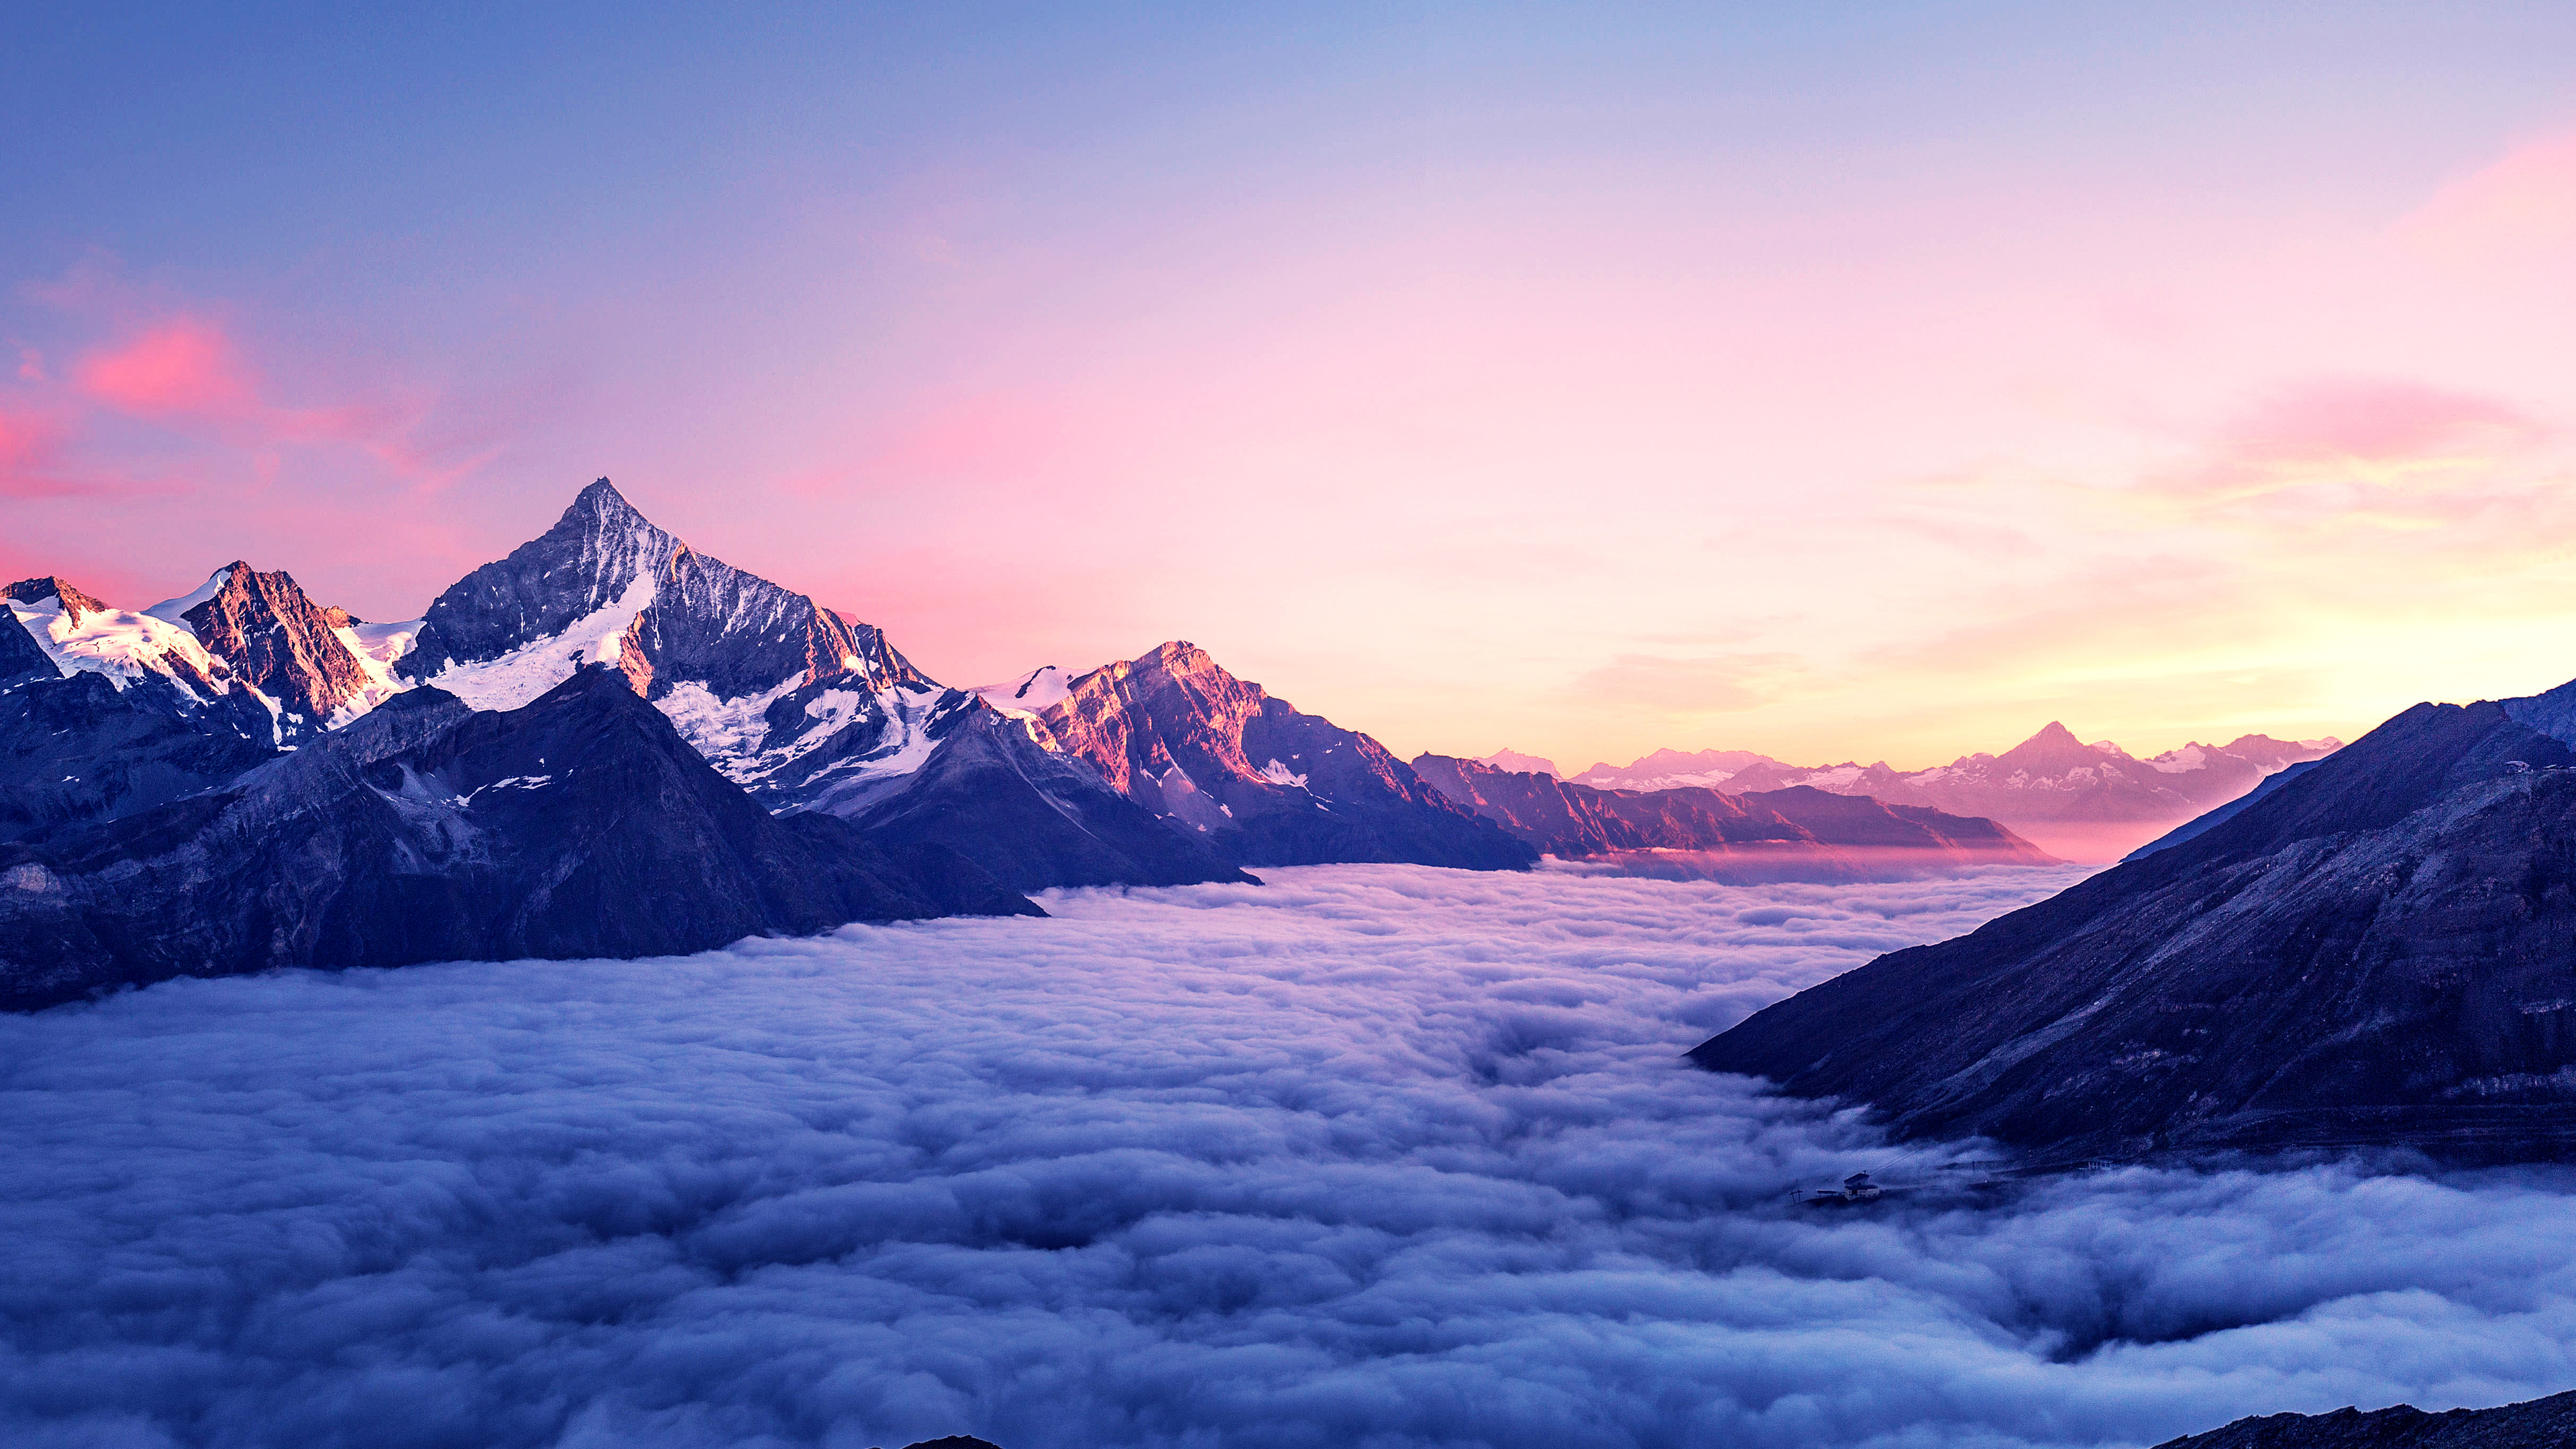 Cloudy Mountains Wallpaper, HD Nature 4K Wallpapers ...